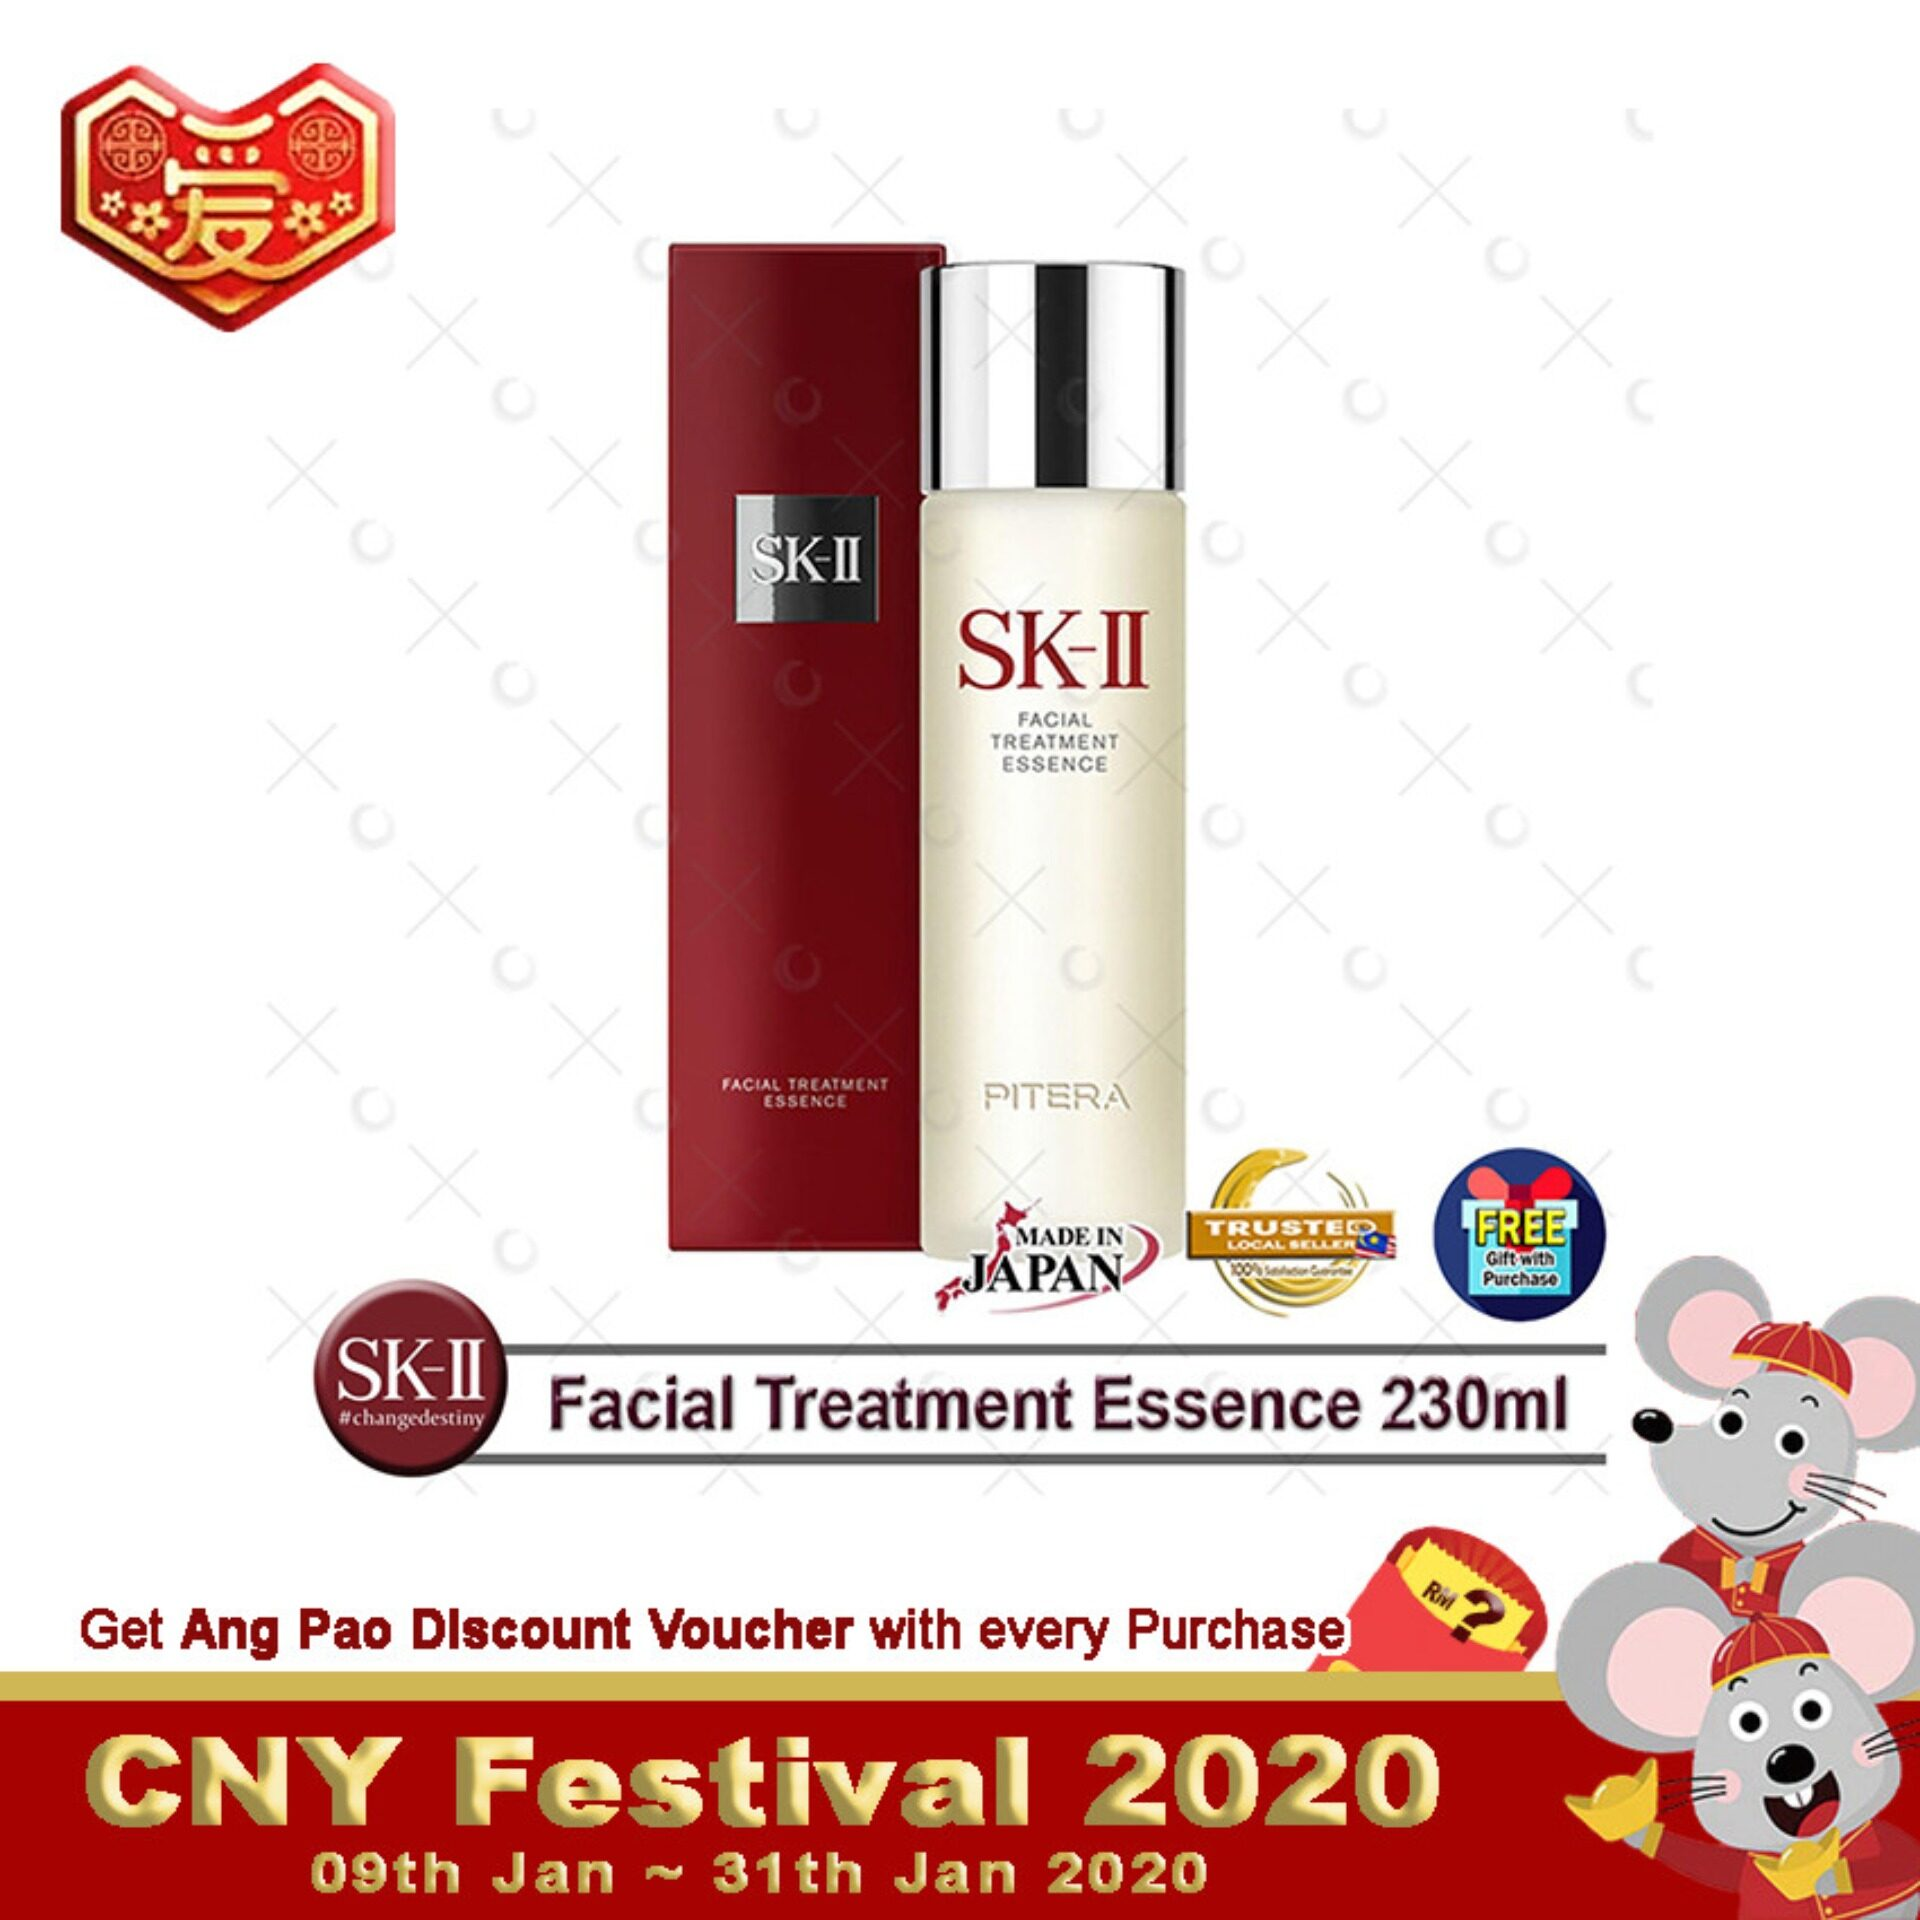 SK II Facial Treatment Essence 230ml FREE SK-II Sample Gift